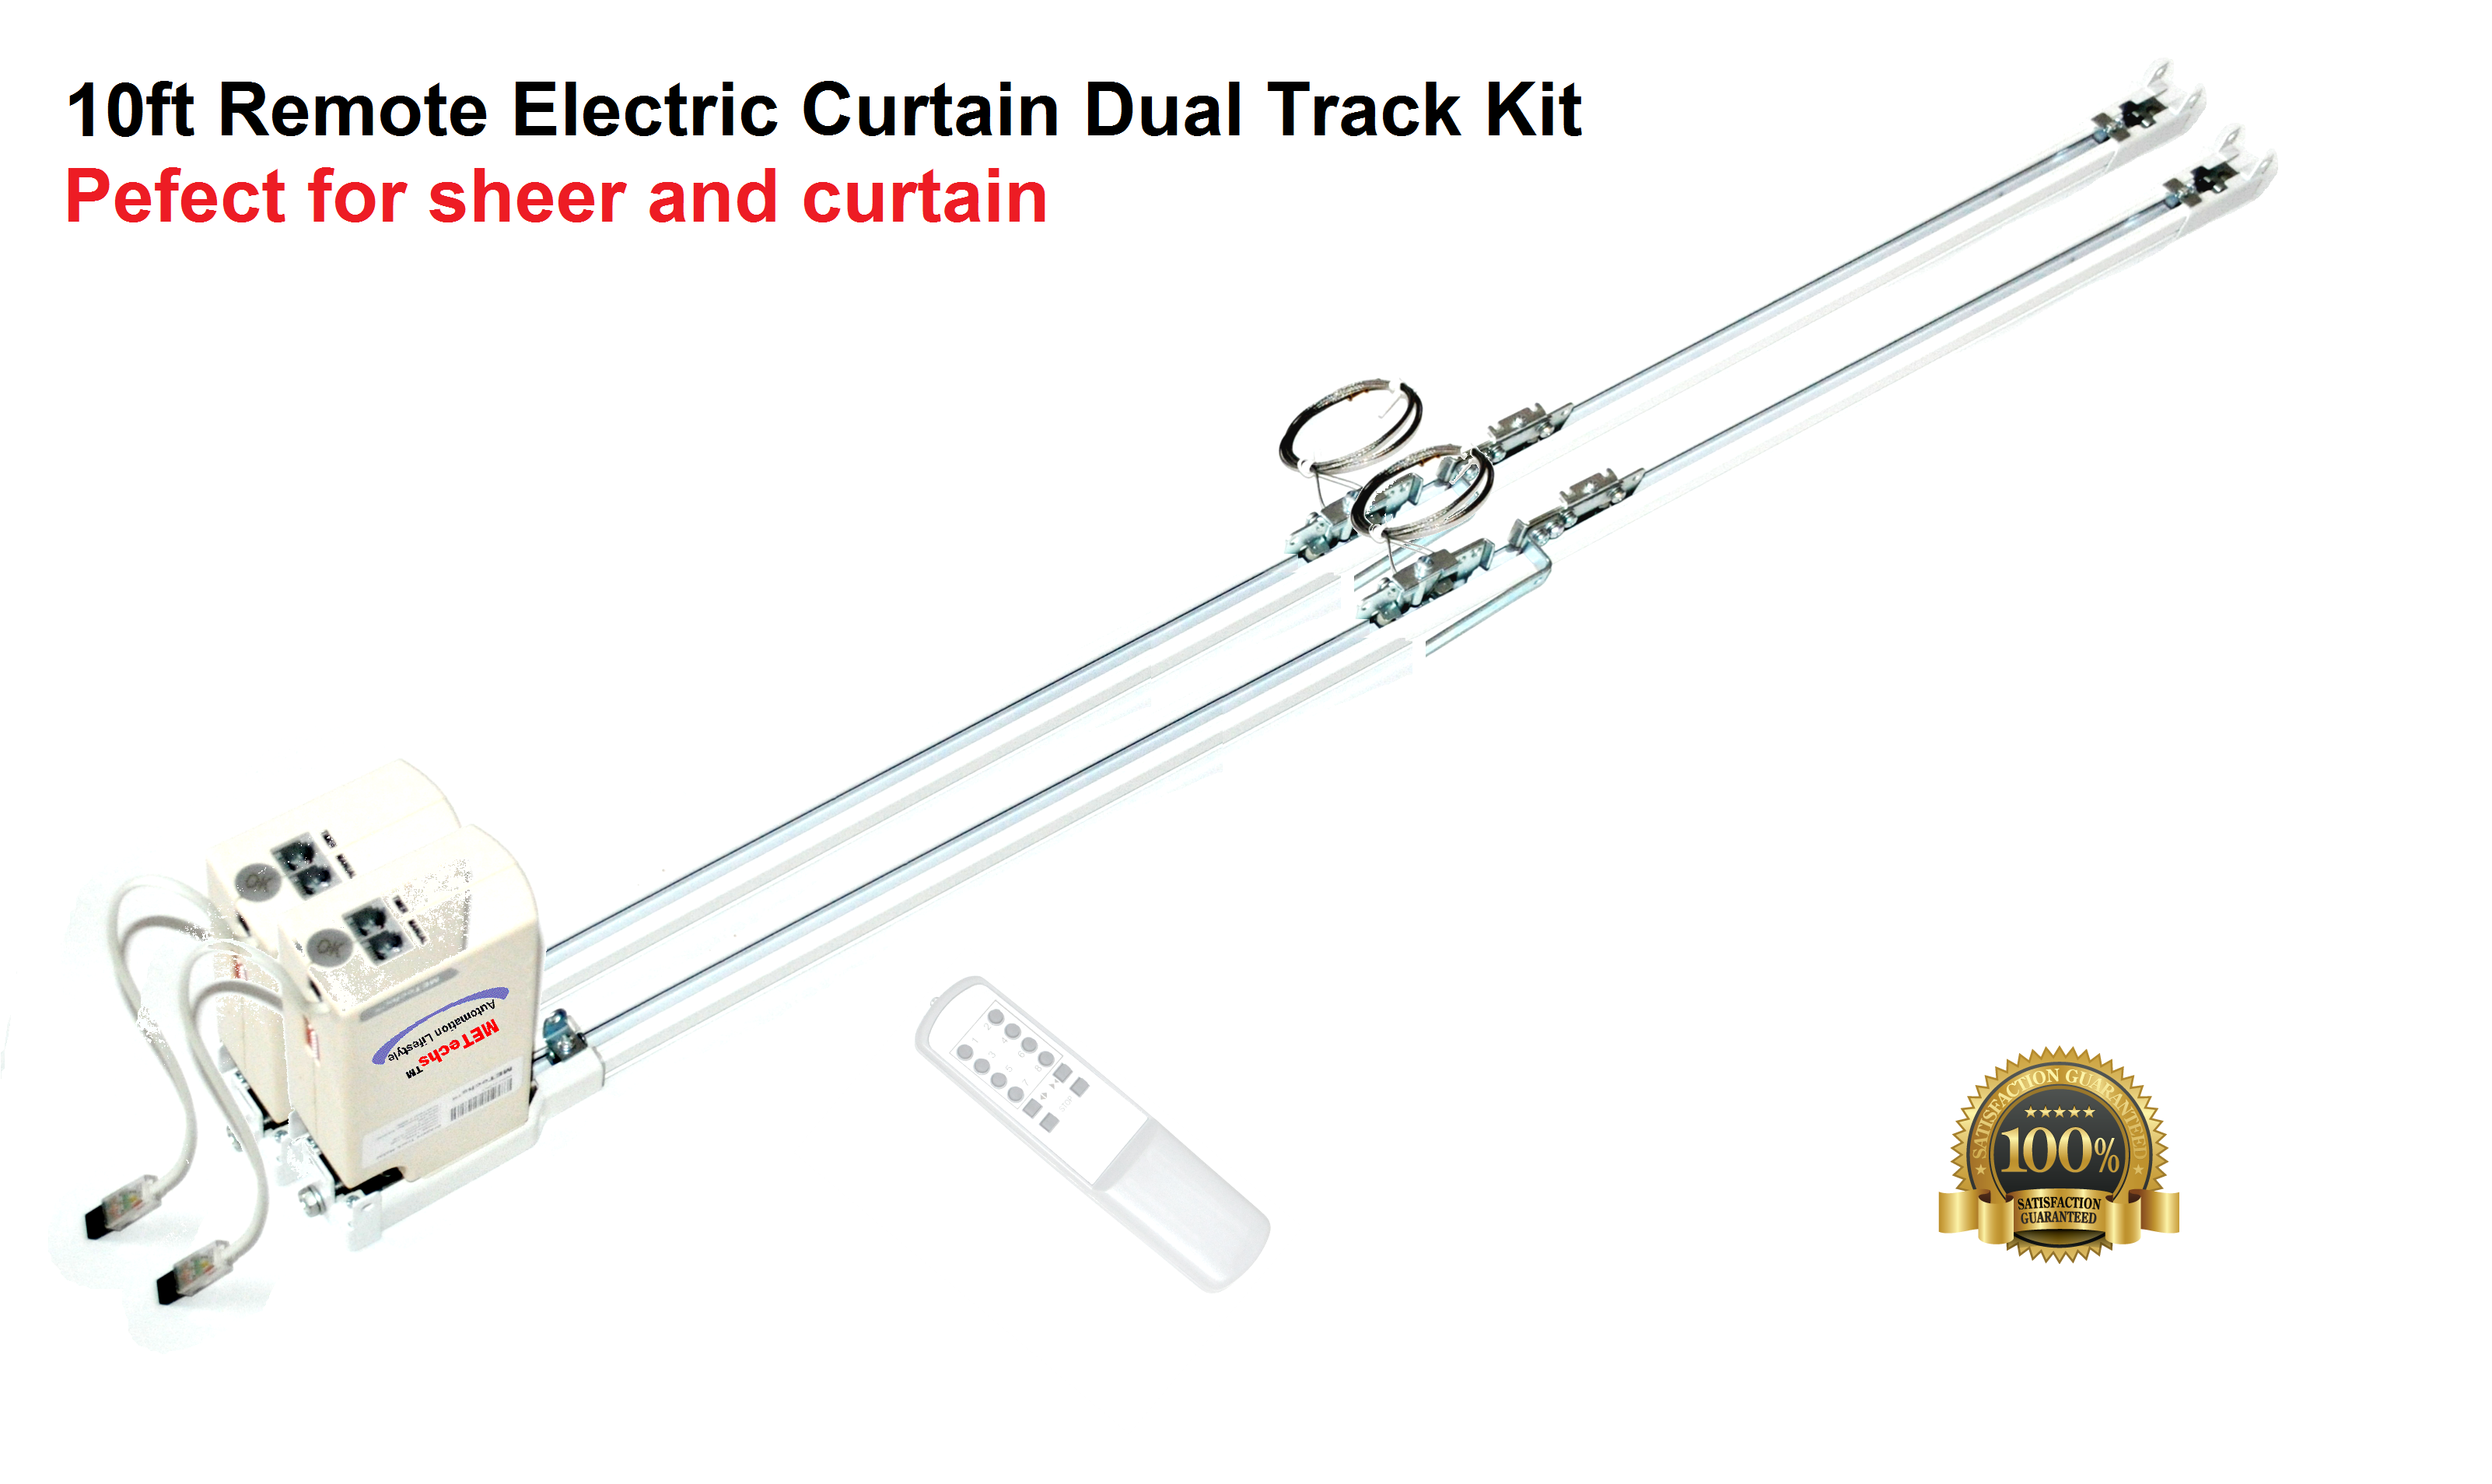 10ft Remote Electric Curtain Dual Track CL200T3M Dual